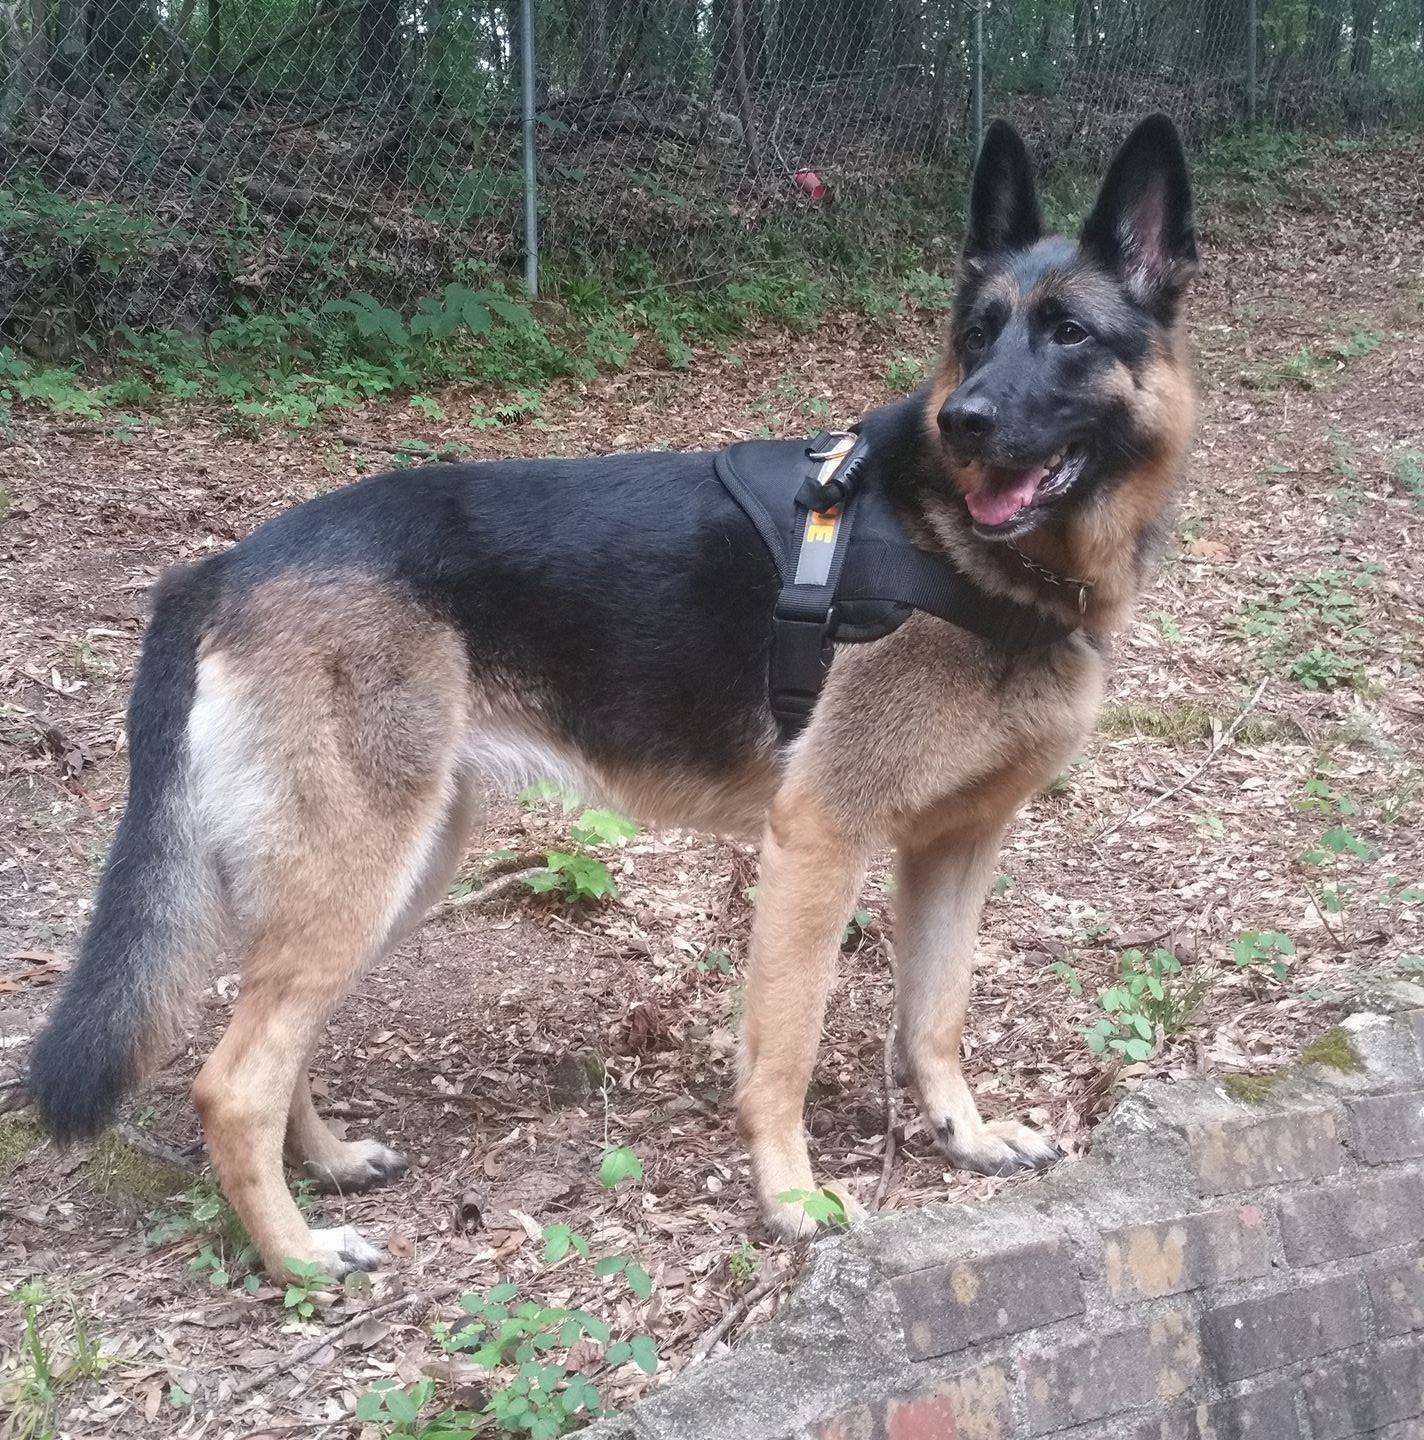 dog training review of PSD Kennels in Poplarville Ms